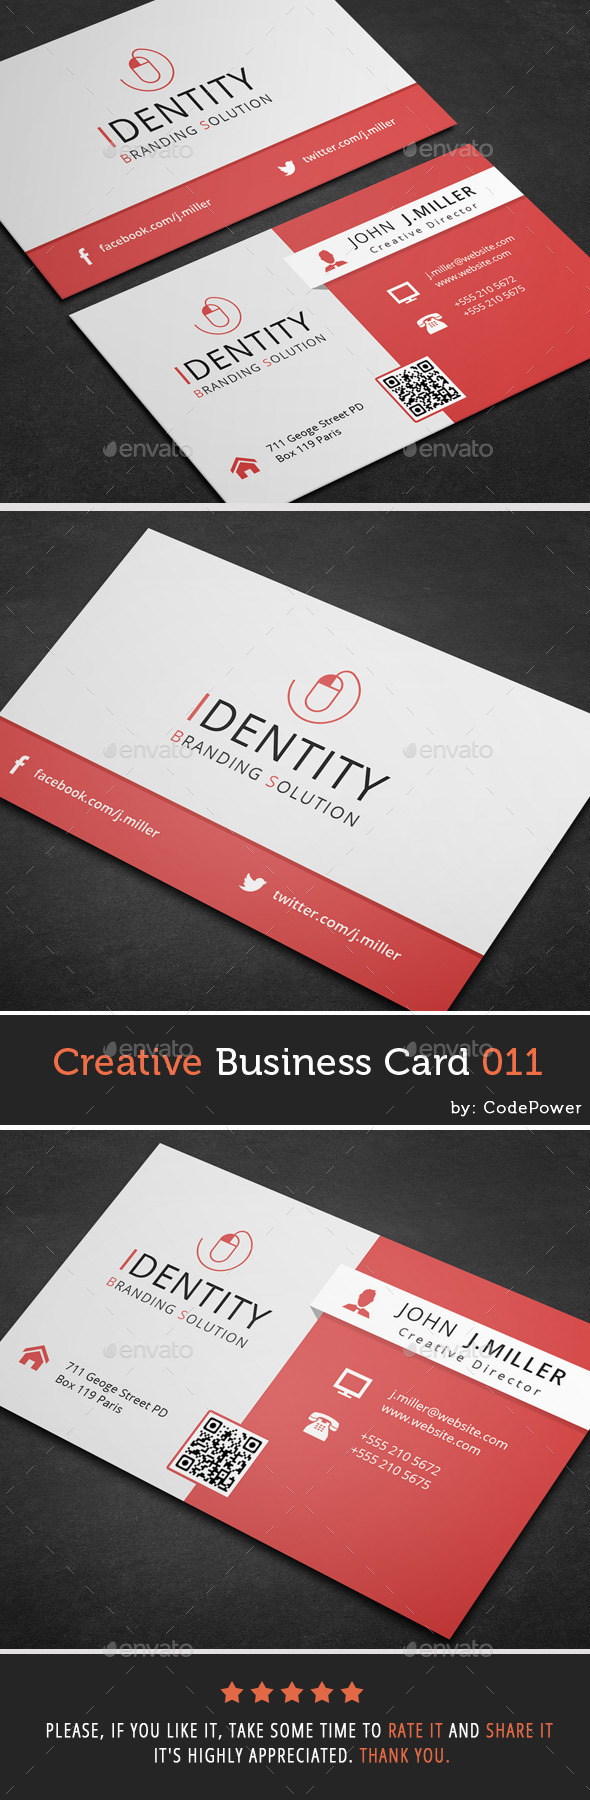 Creative Business Card 011 - Creative Business Cards